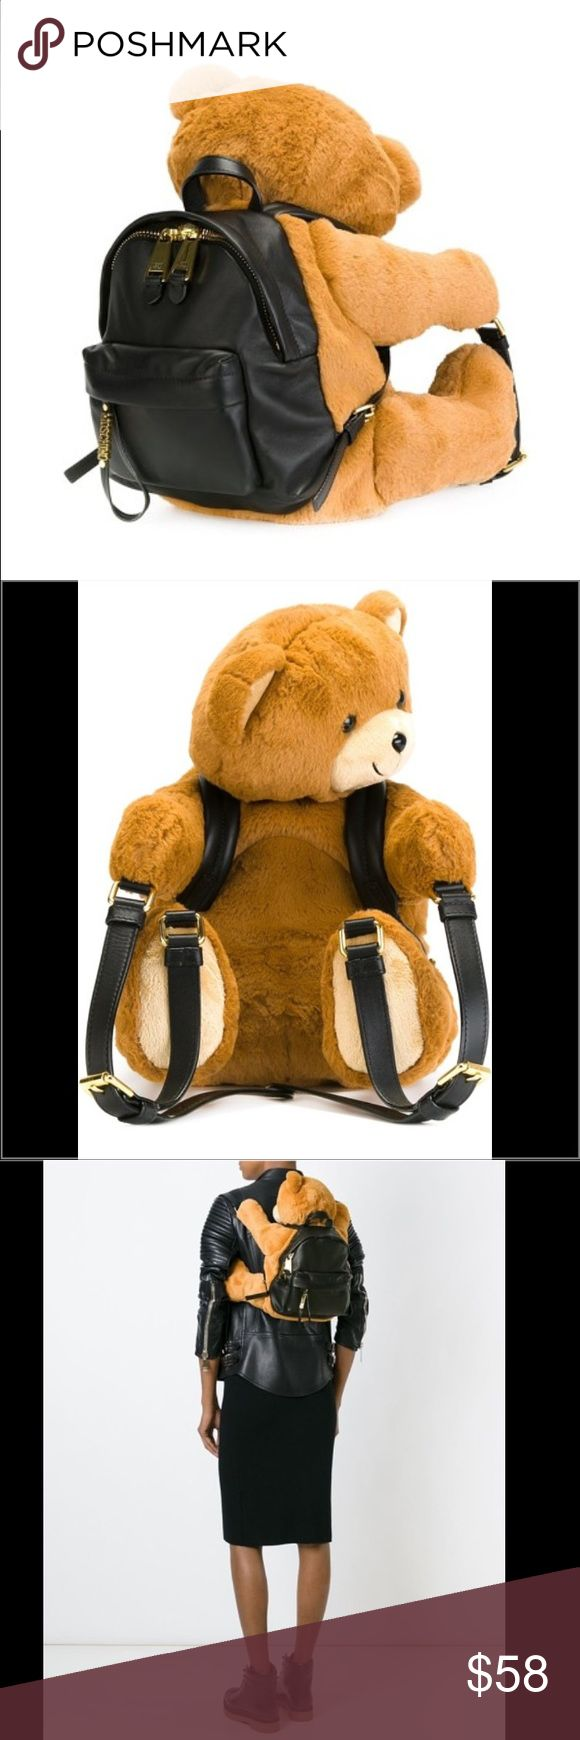 Moschino style NWT teddy bear backpack! Brand new Moschino style teddy bear back pack! So cute and adorable, so fun, you'll never want to put him down!:) comes in small and large sizes, and retails $1800 on the Moschino site. Get it here on sale only $48 Or $38 on m! Please ask and we can post 4 you..Teddy bear comes w attached leather backpack, great for cell phones, wallet, etc! Bags Backpacks